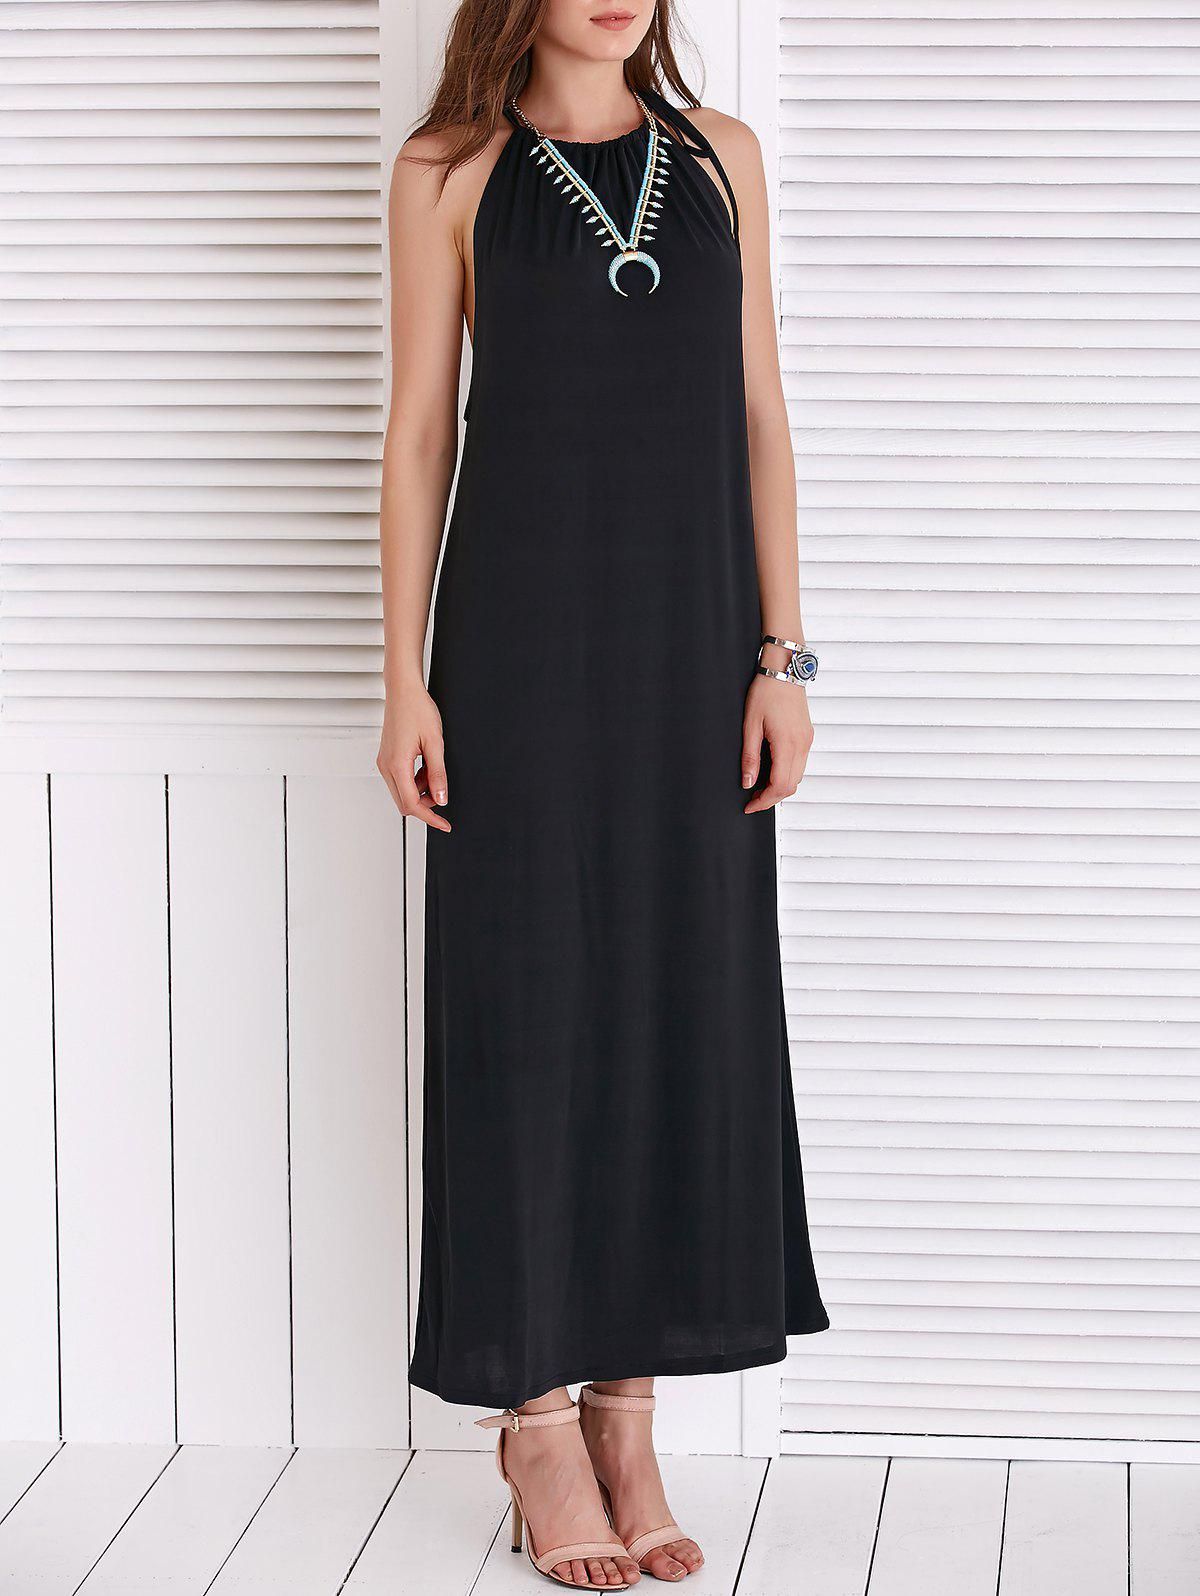 Chic Women's Strappy Loose-Fitting Black Maxi Dress - BLACK L